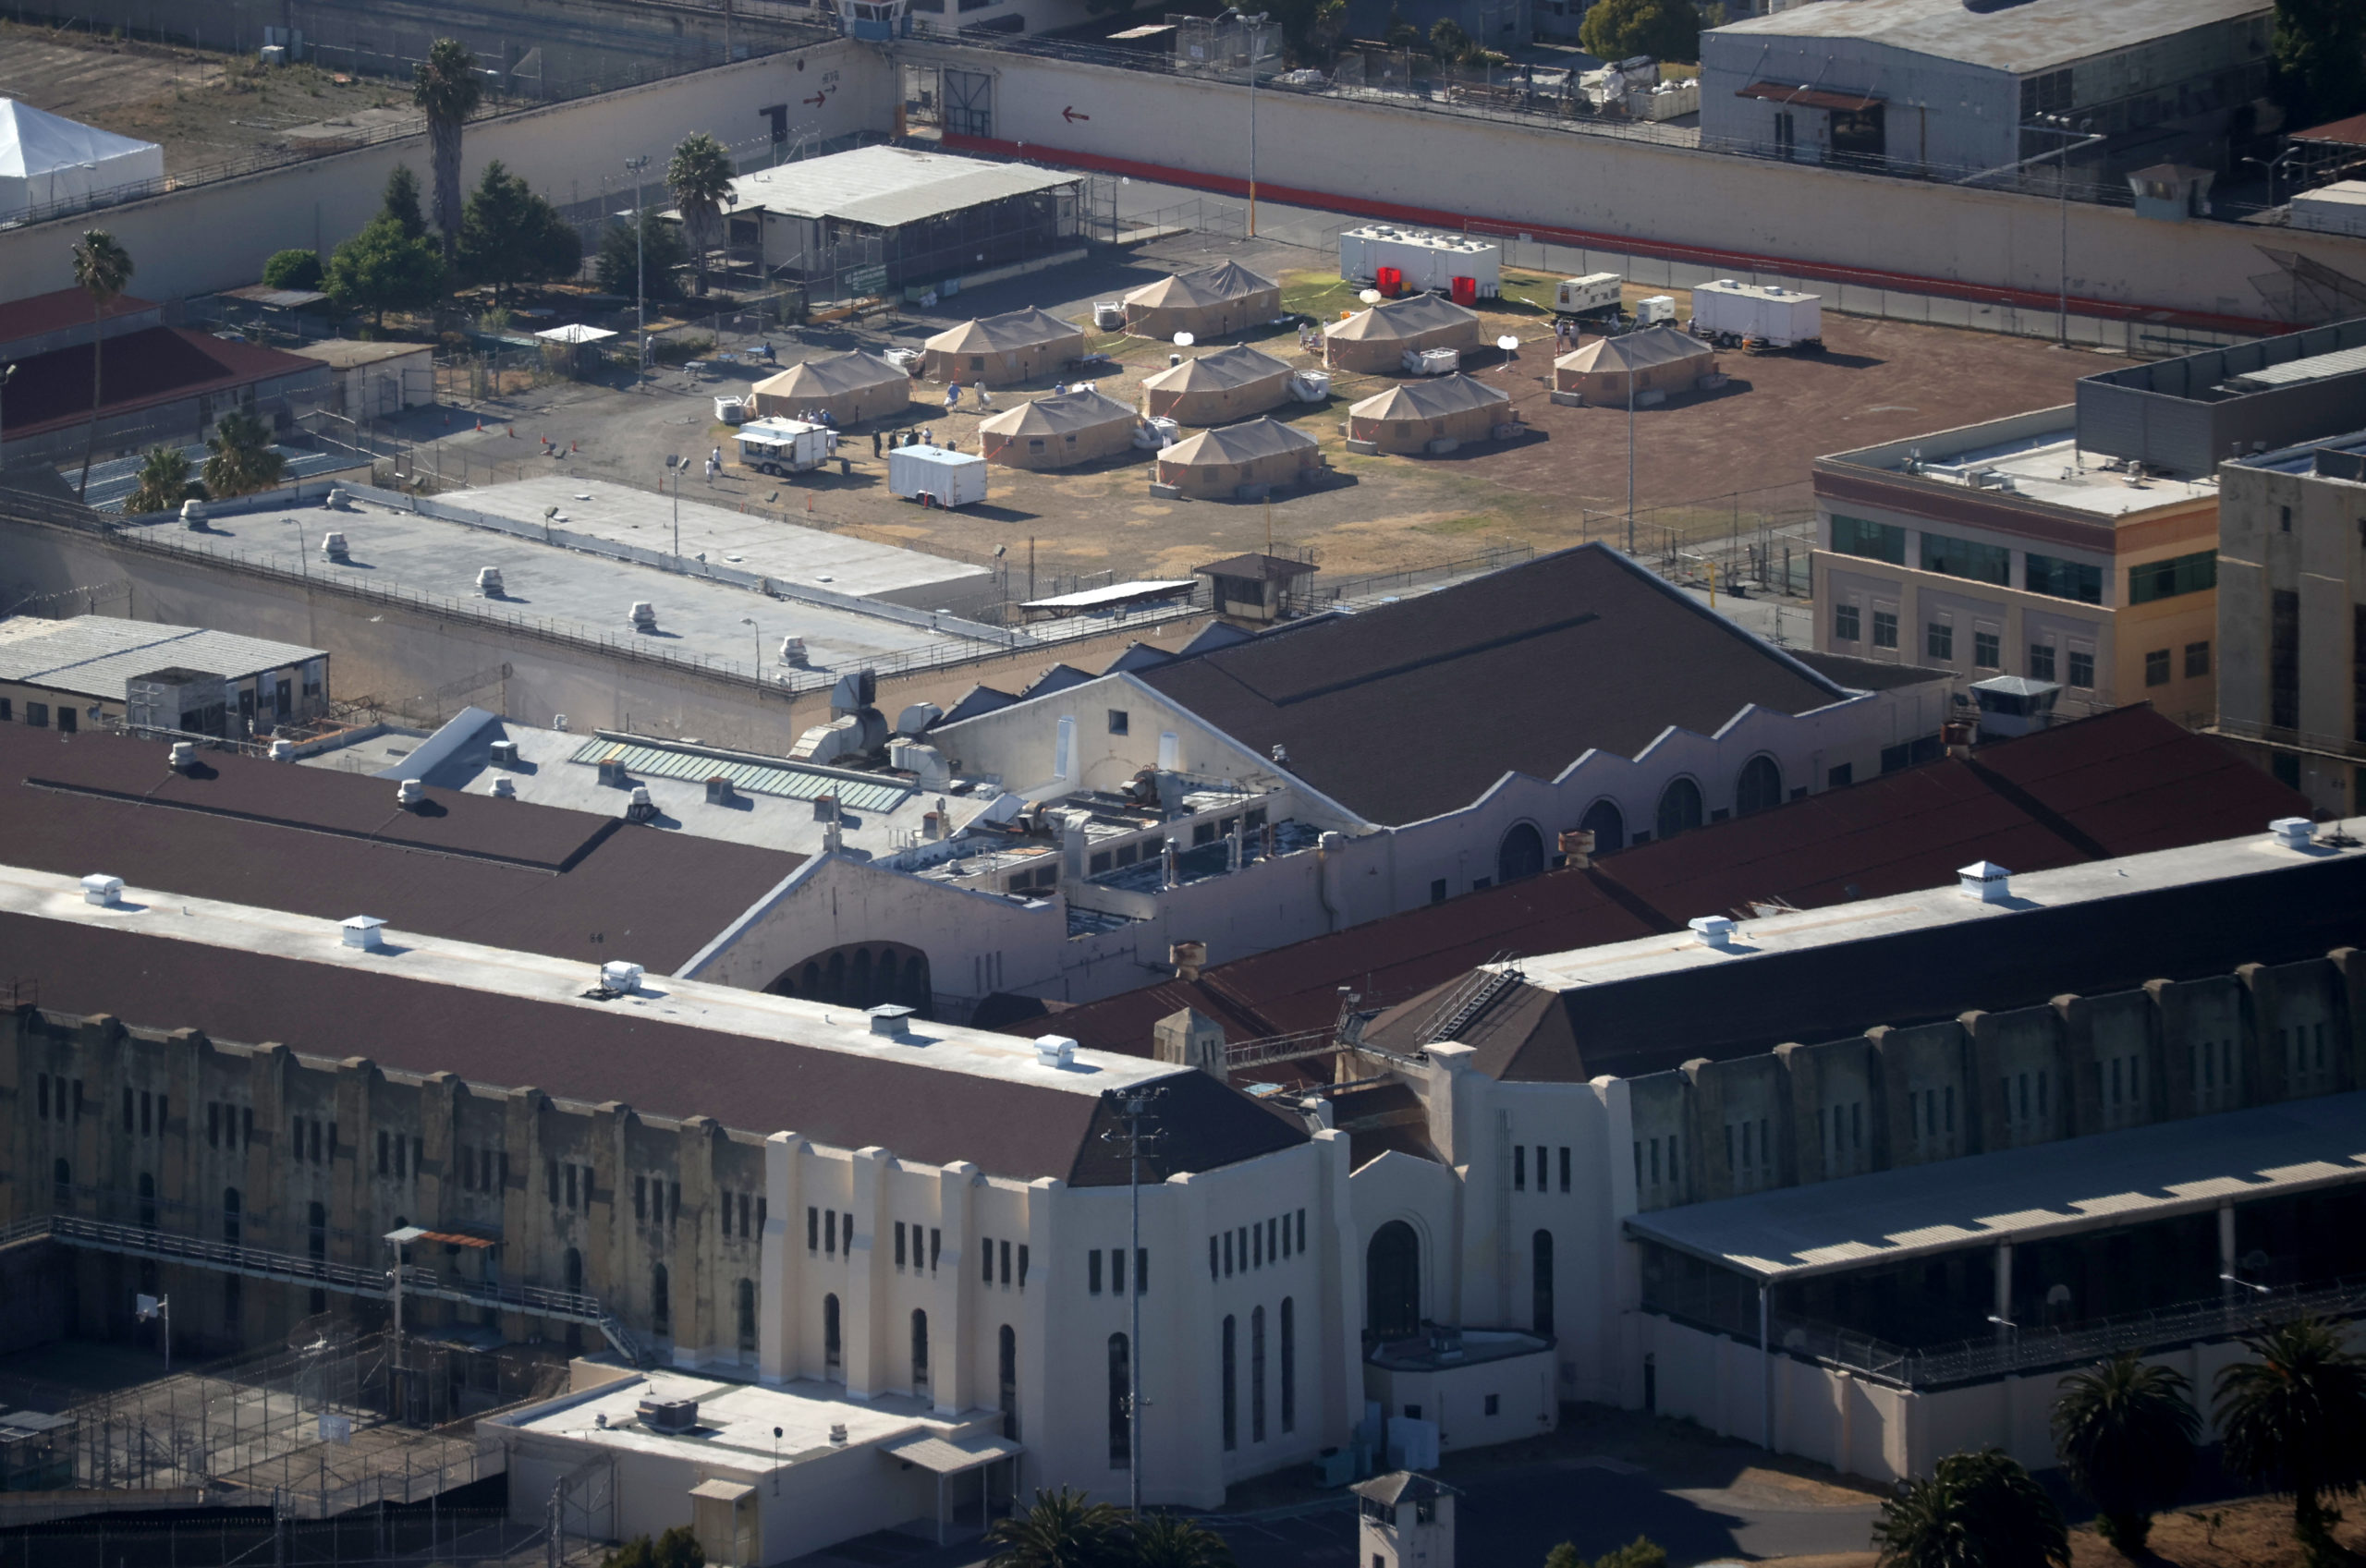 A view of a new emergency care facility that was erected to treat inmates infected with COVID-19 at San Quentin State Prison on July 08, 2020 in San Quentin, California. (Justin Sullivan/Getty Images)